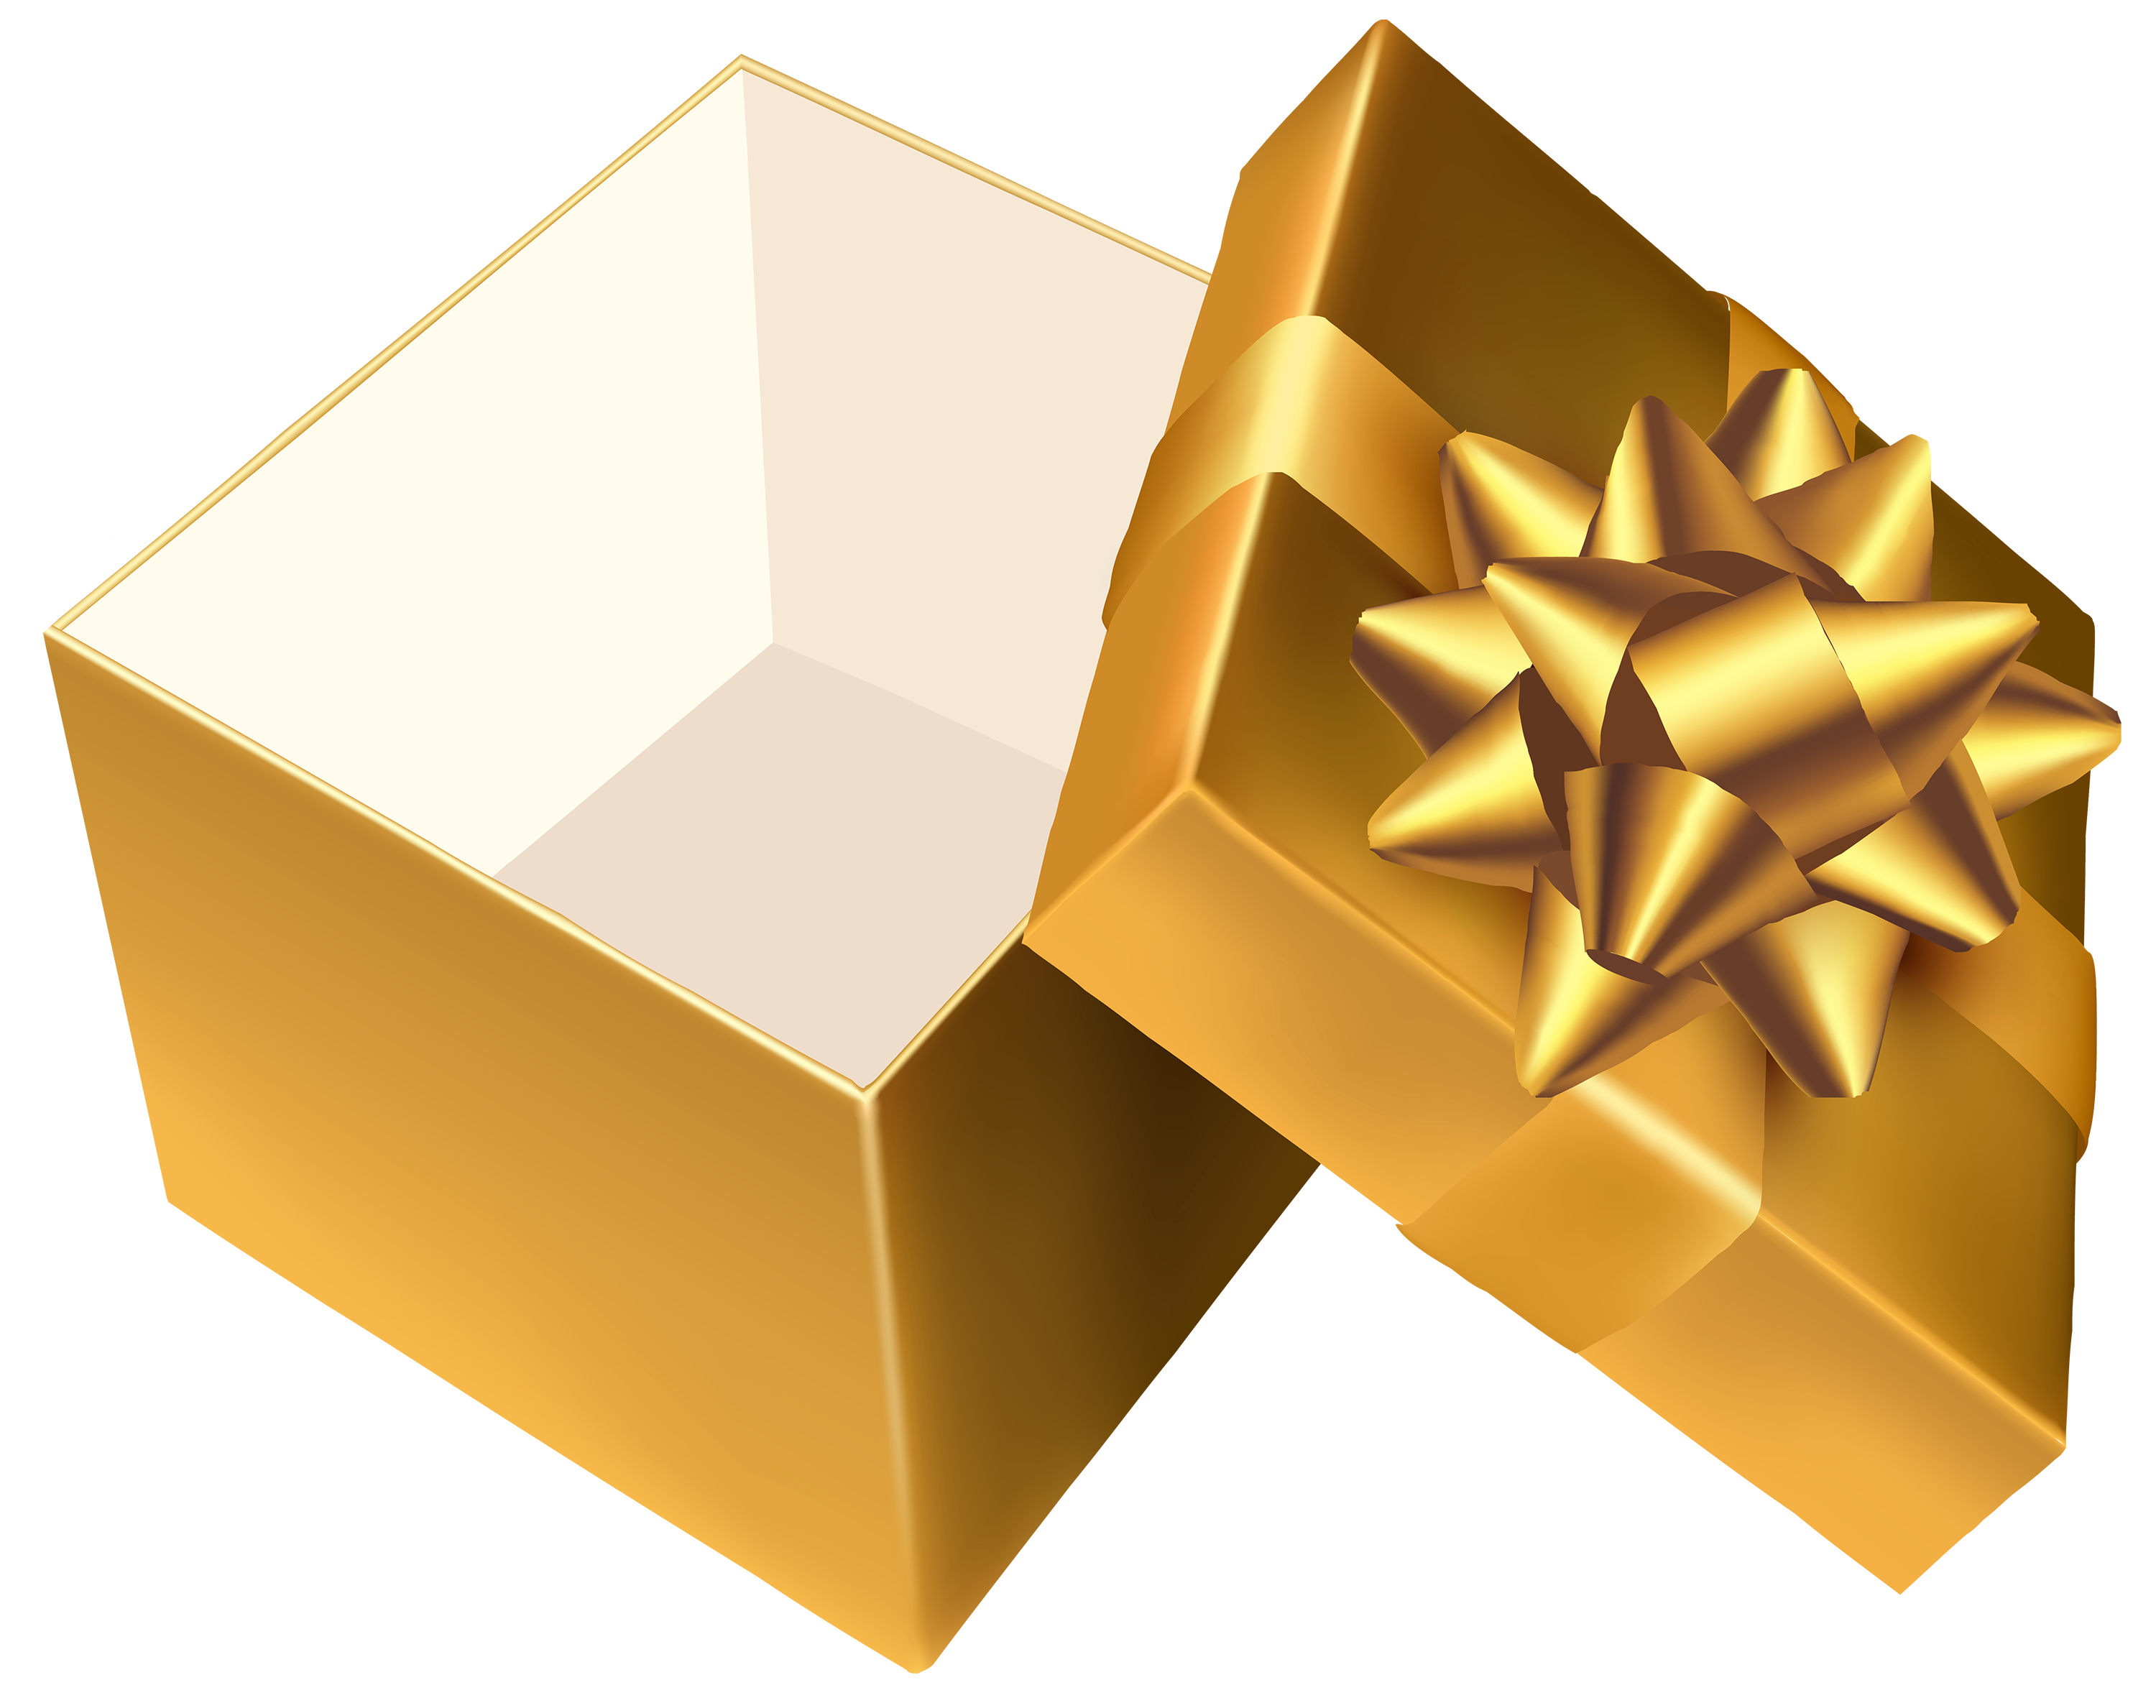 gold open gift png clipart best web clipart #31491